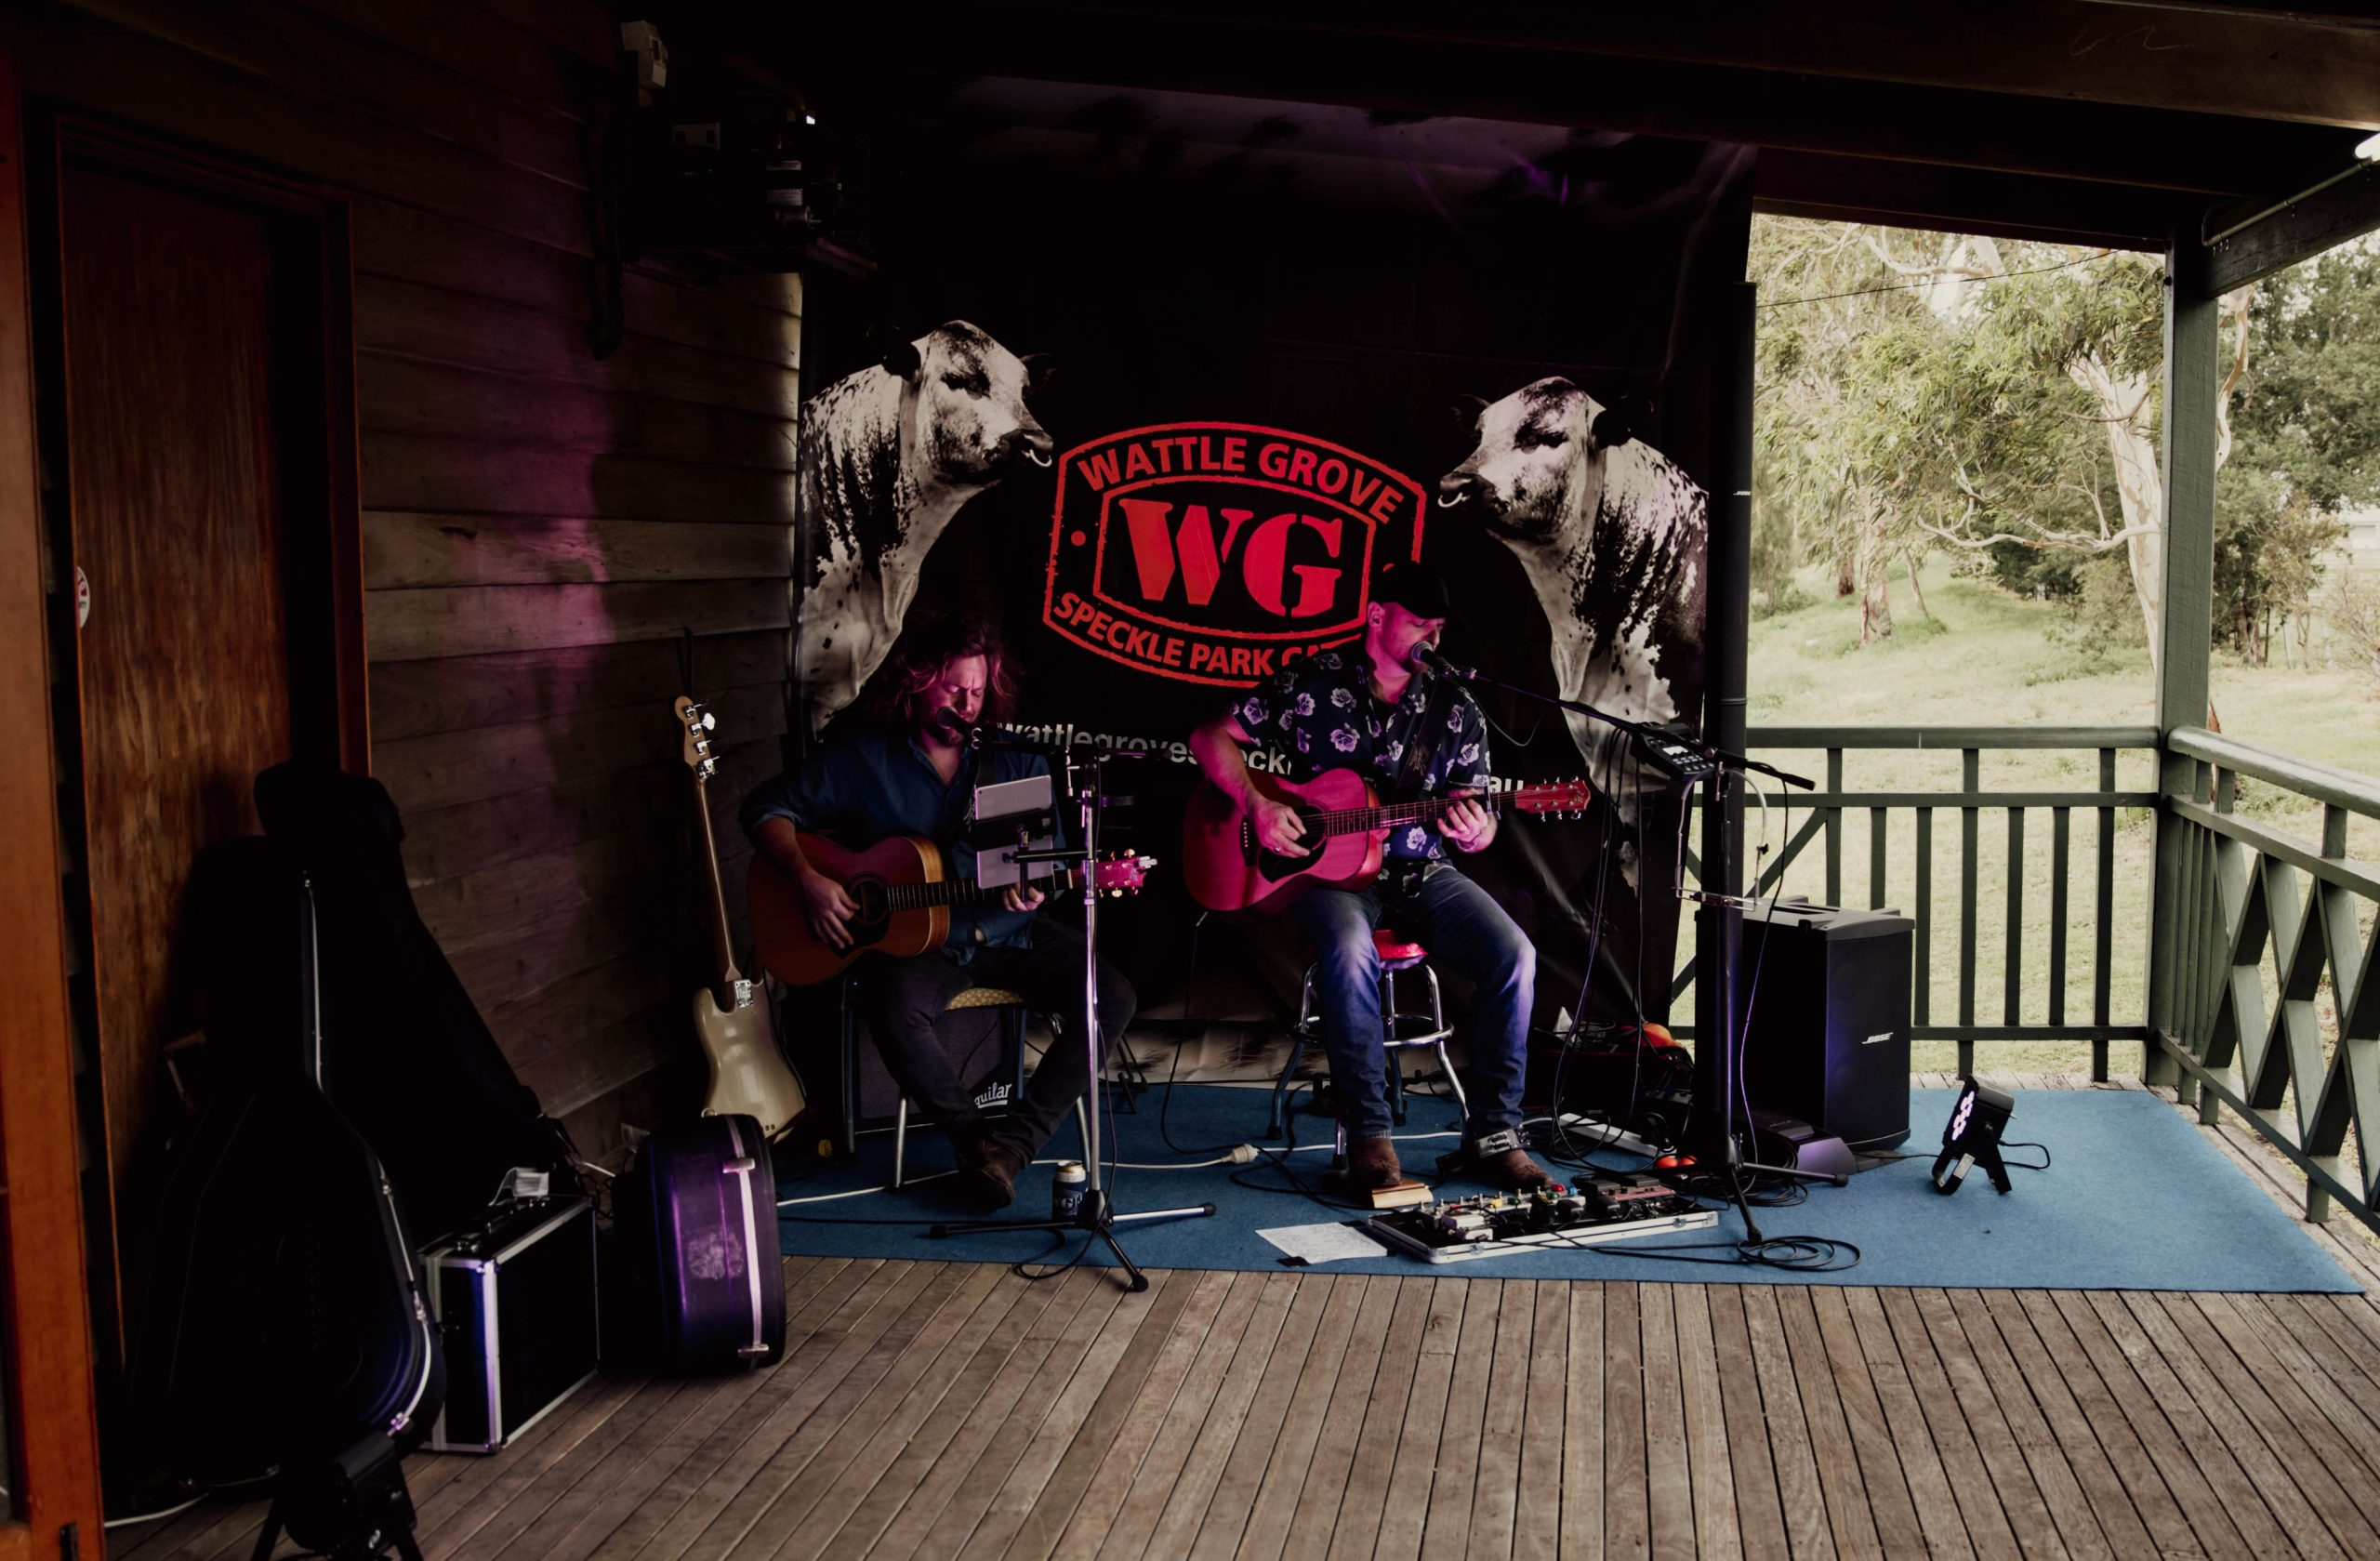 Wattle Grove Twilight Sale 2020 Band